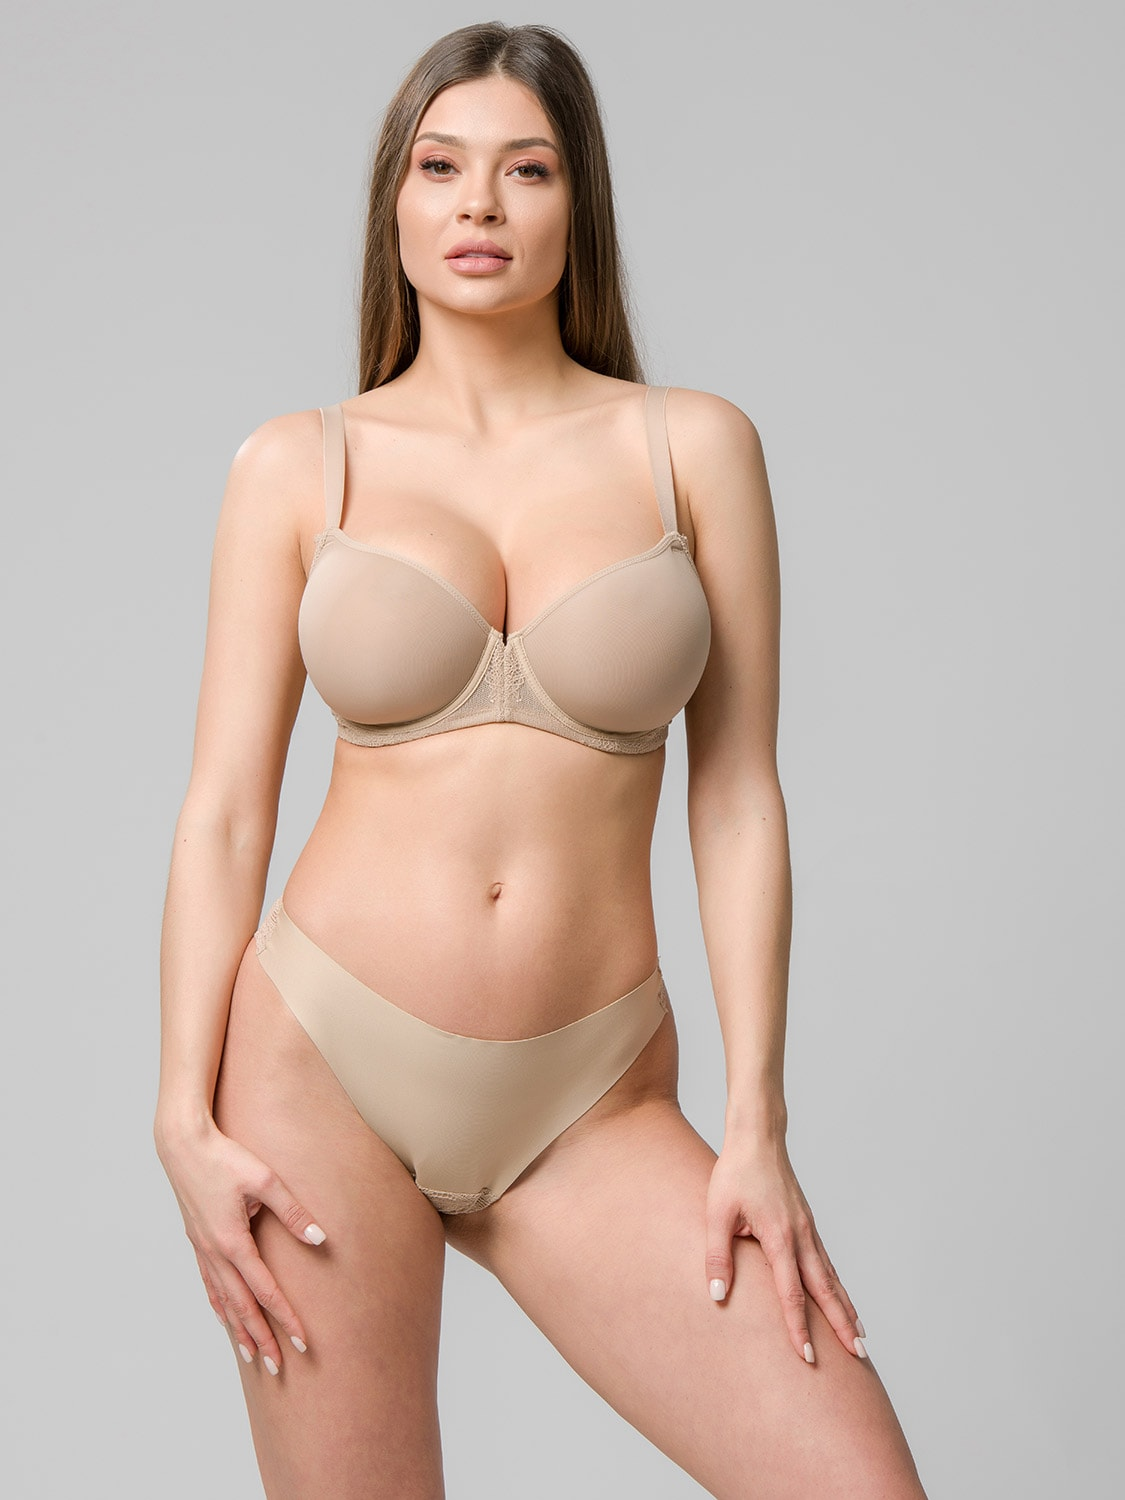 Perfect fit spacer balconette 14103 & brazilian 24102 beige front